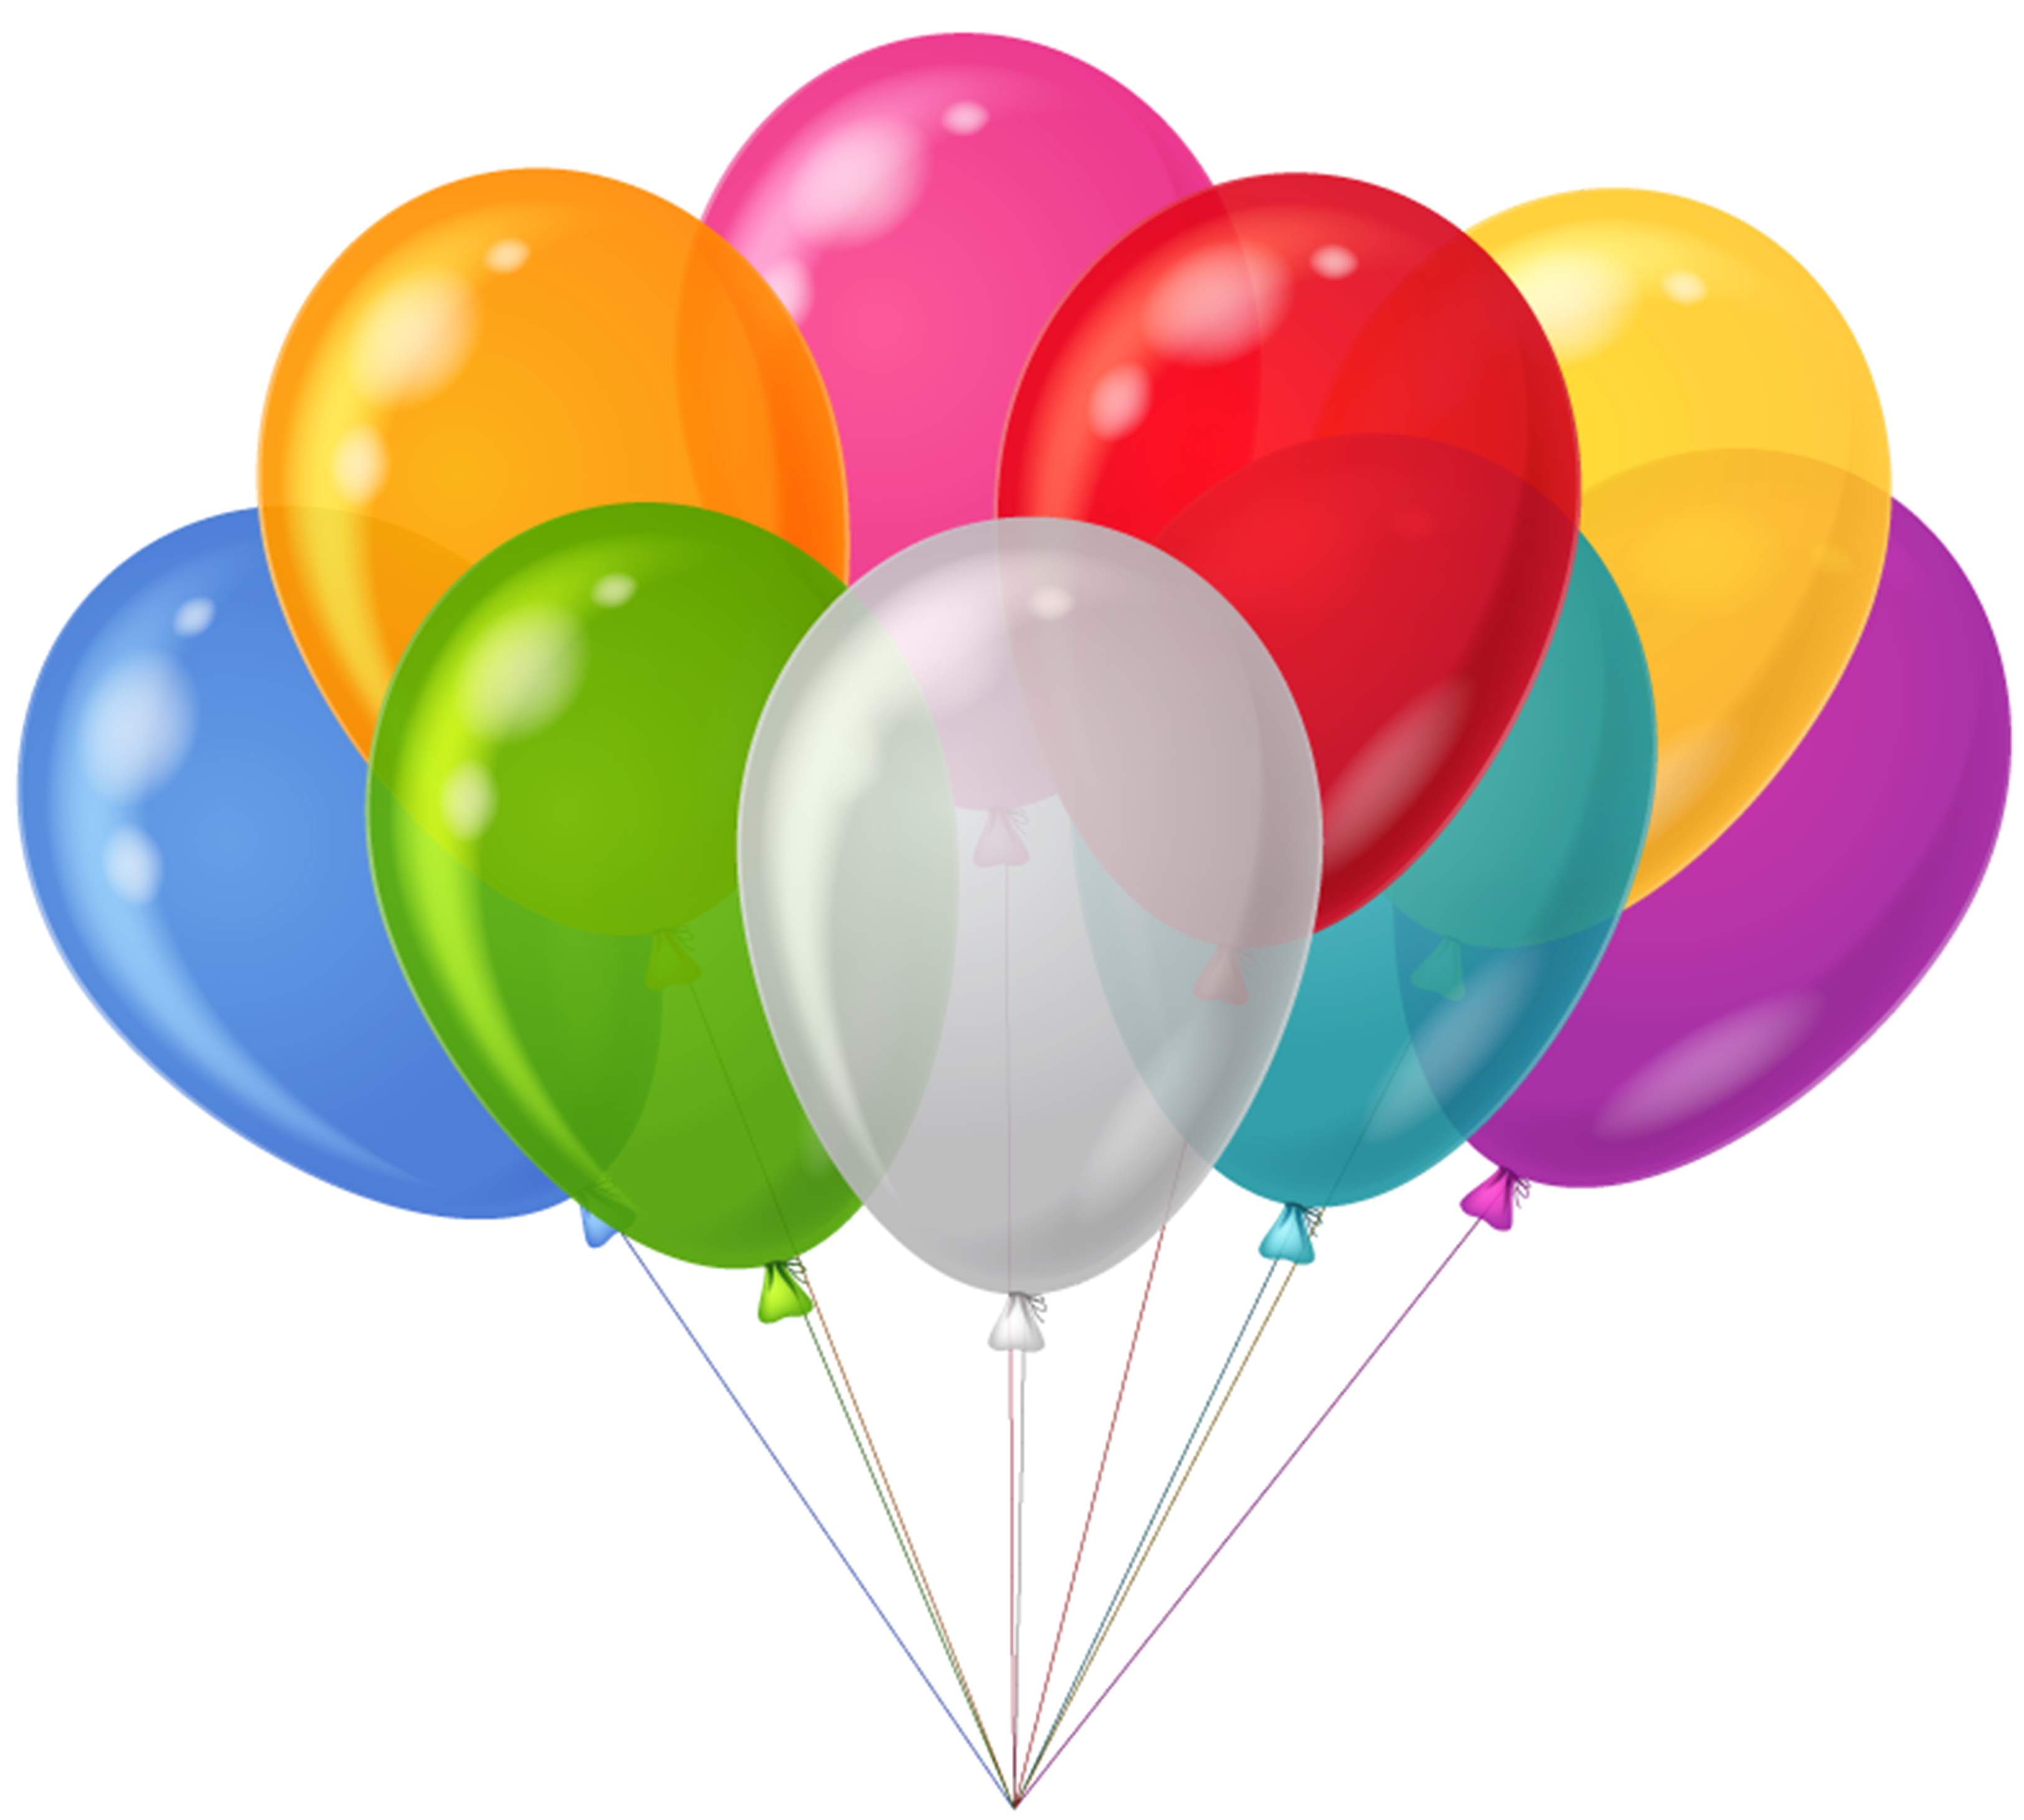 Hot Air Balloon Clip Art Png Free Clipart Images